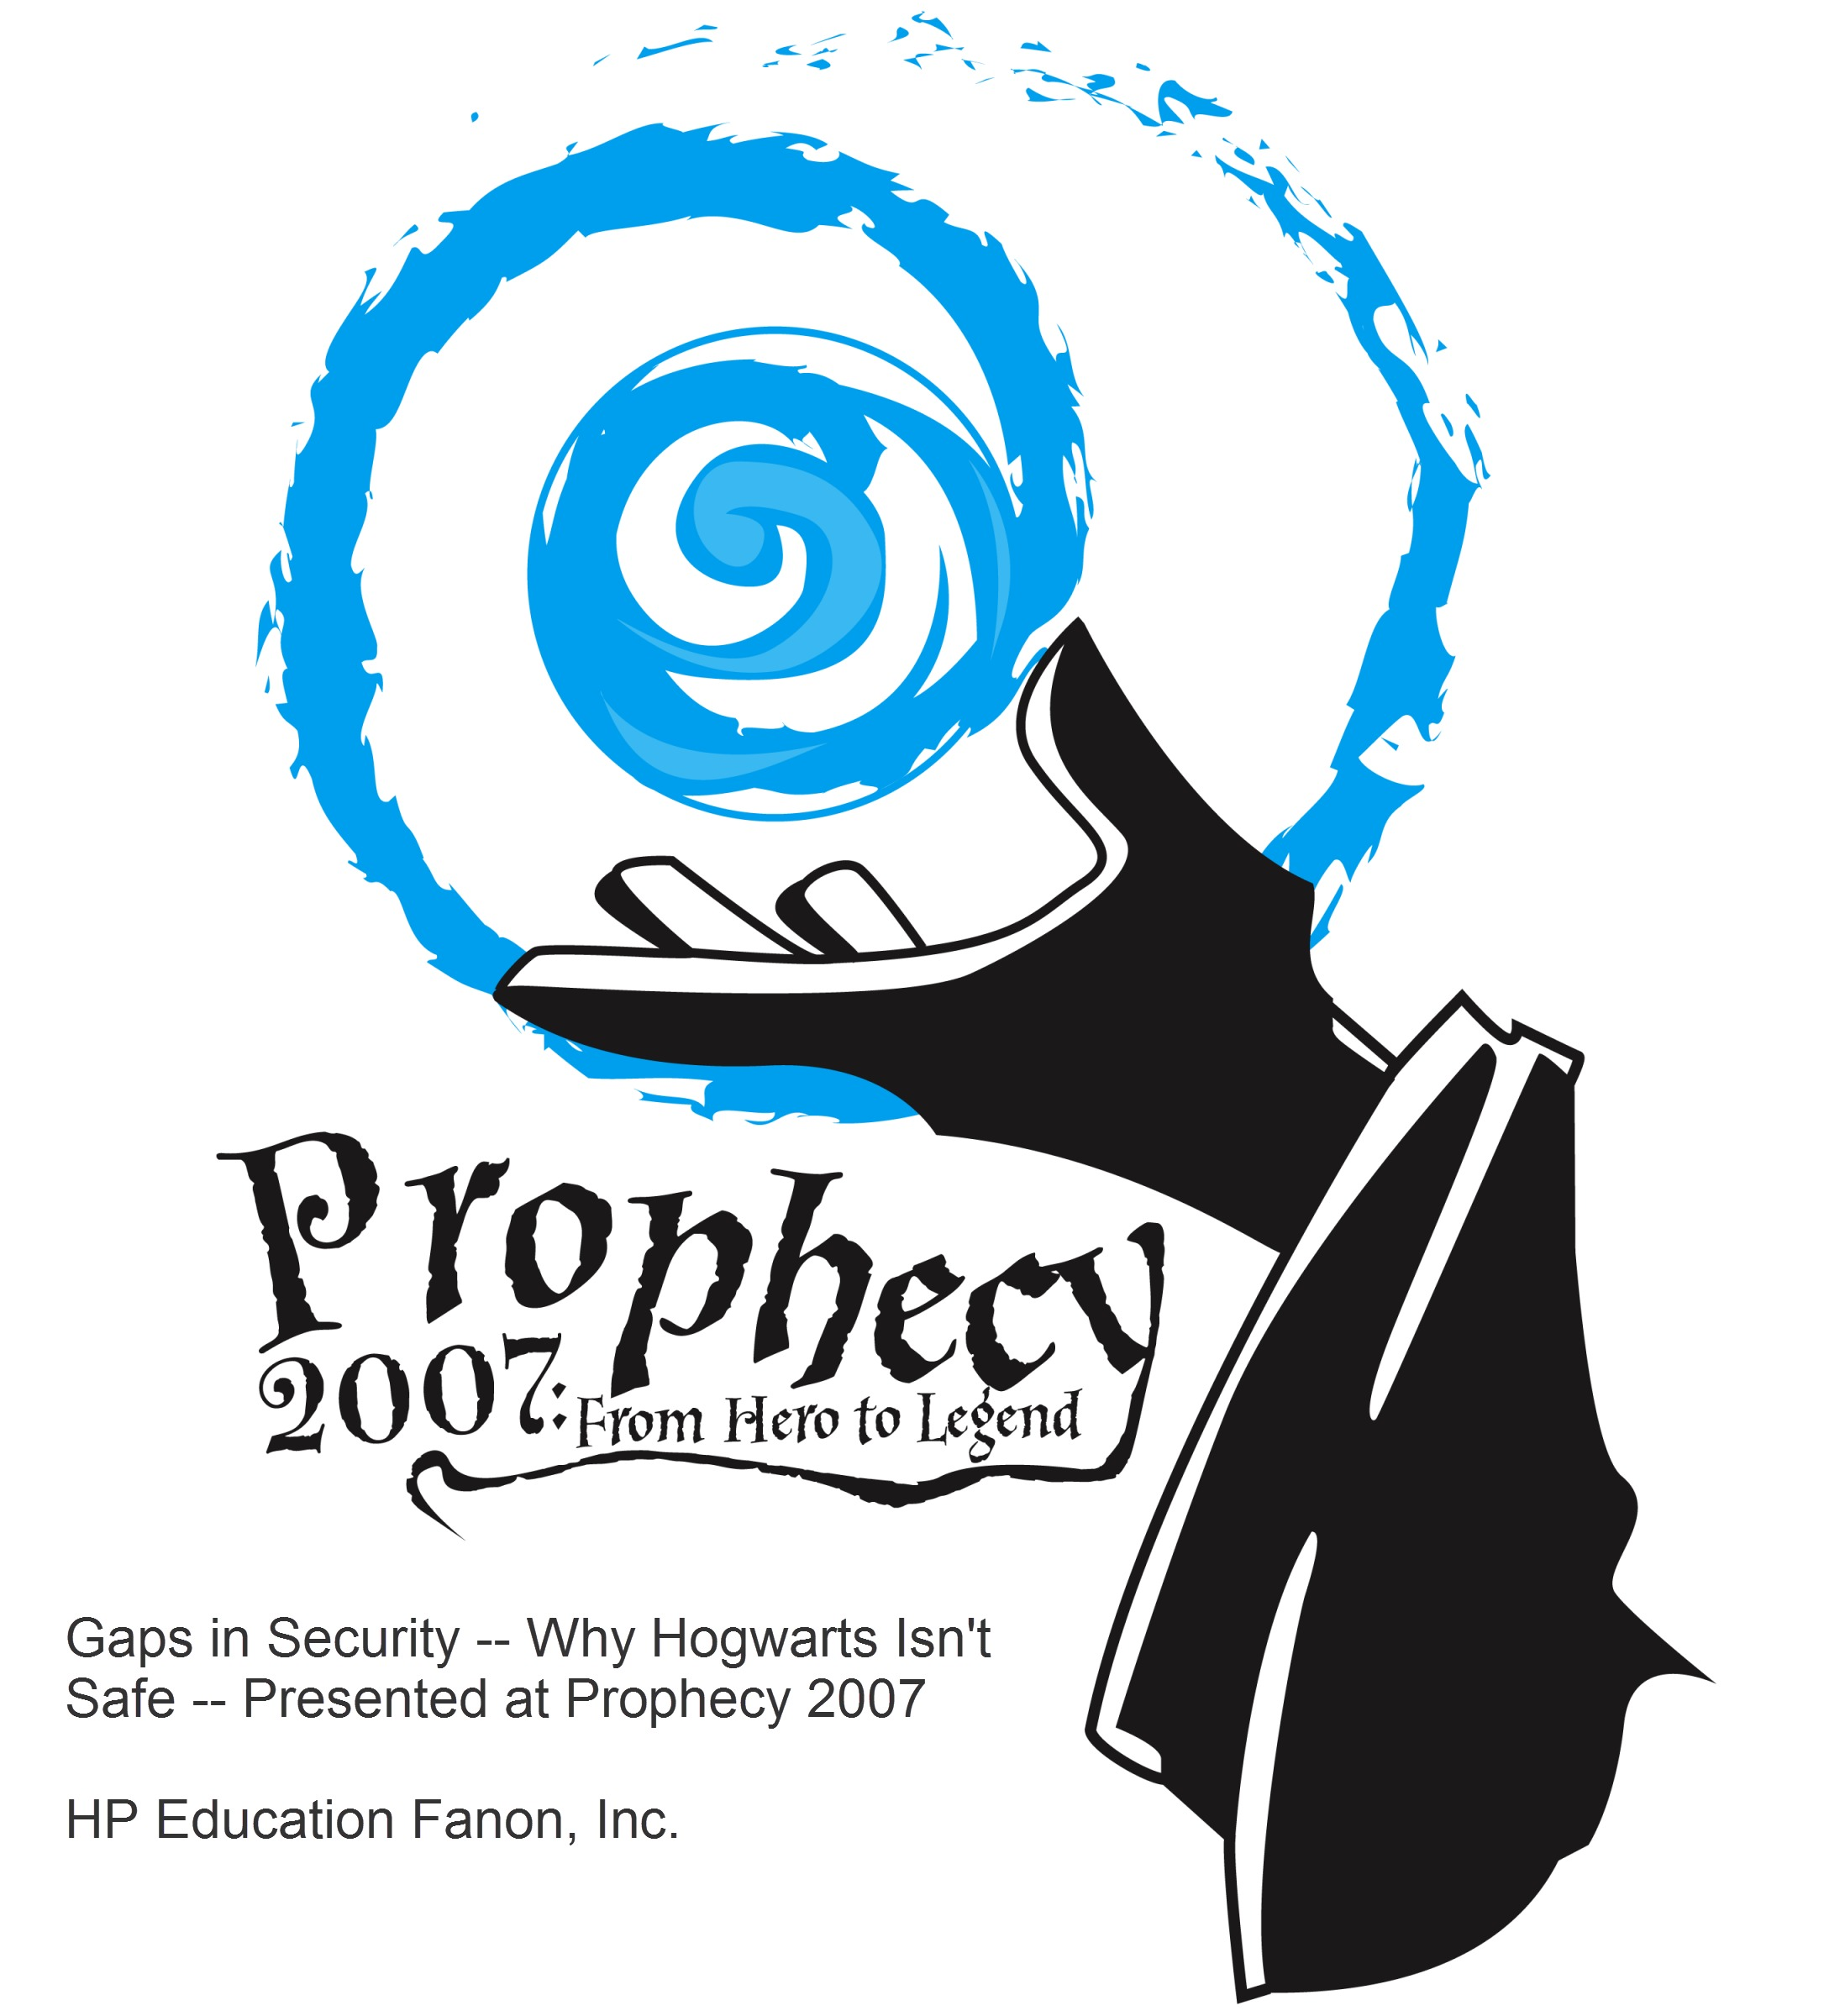 Gaps in Security – Why Hogwarts Isn't Safe: Presented at Prophecy 2007